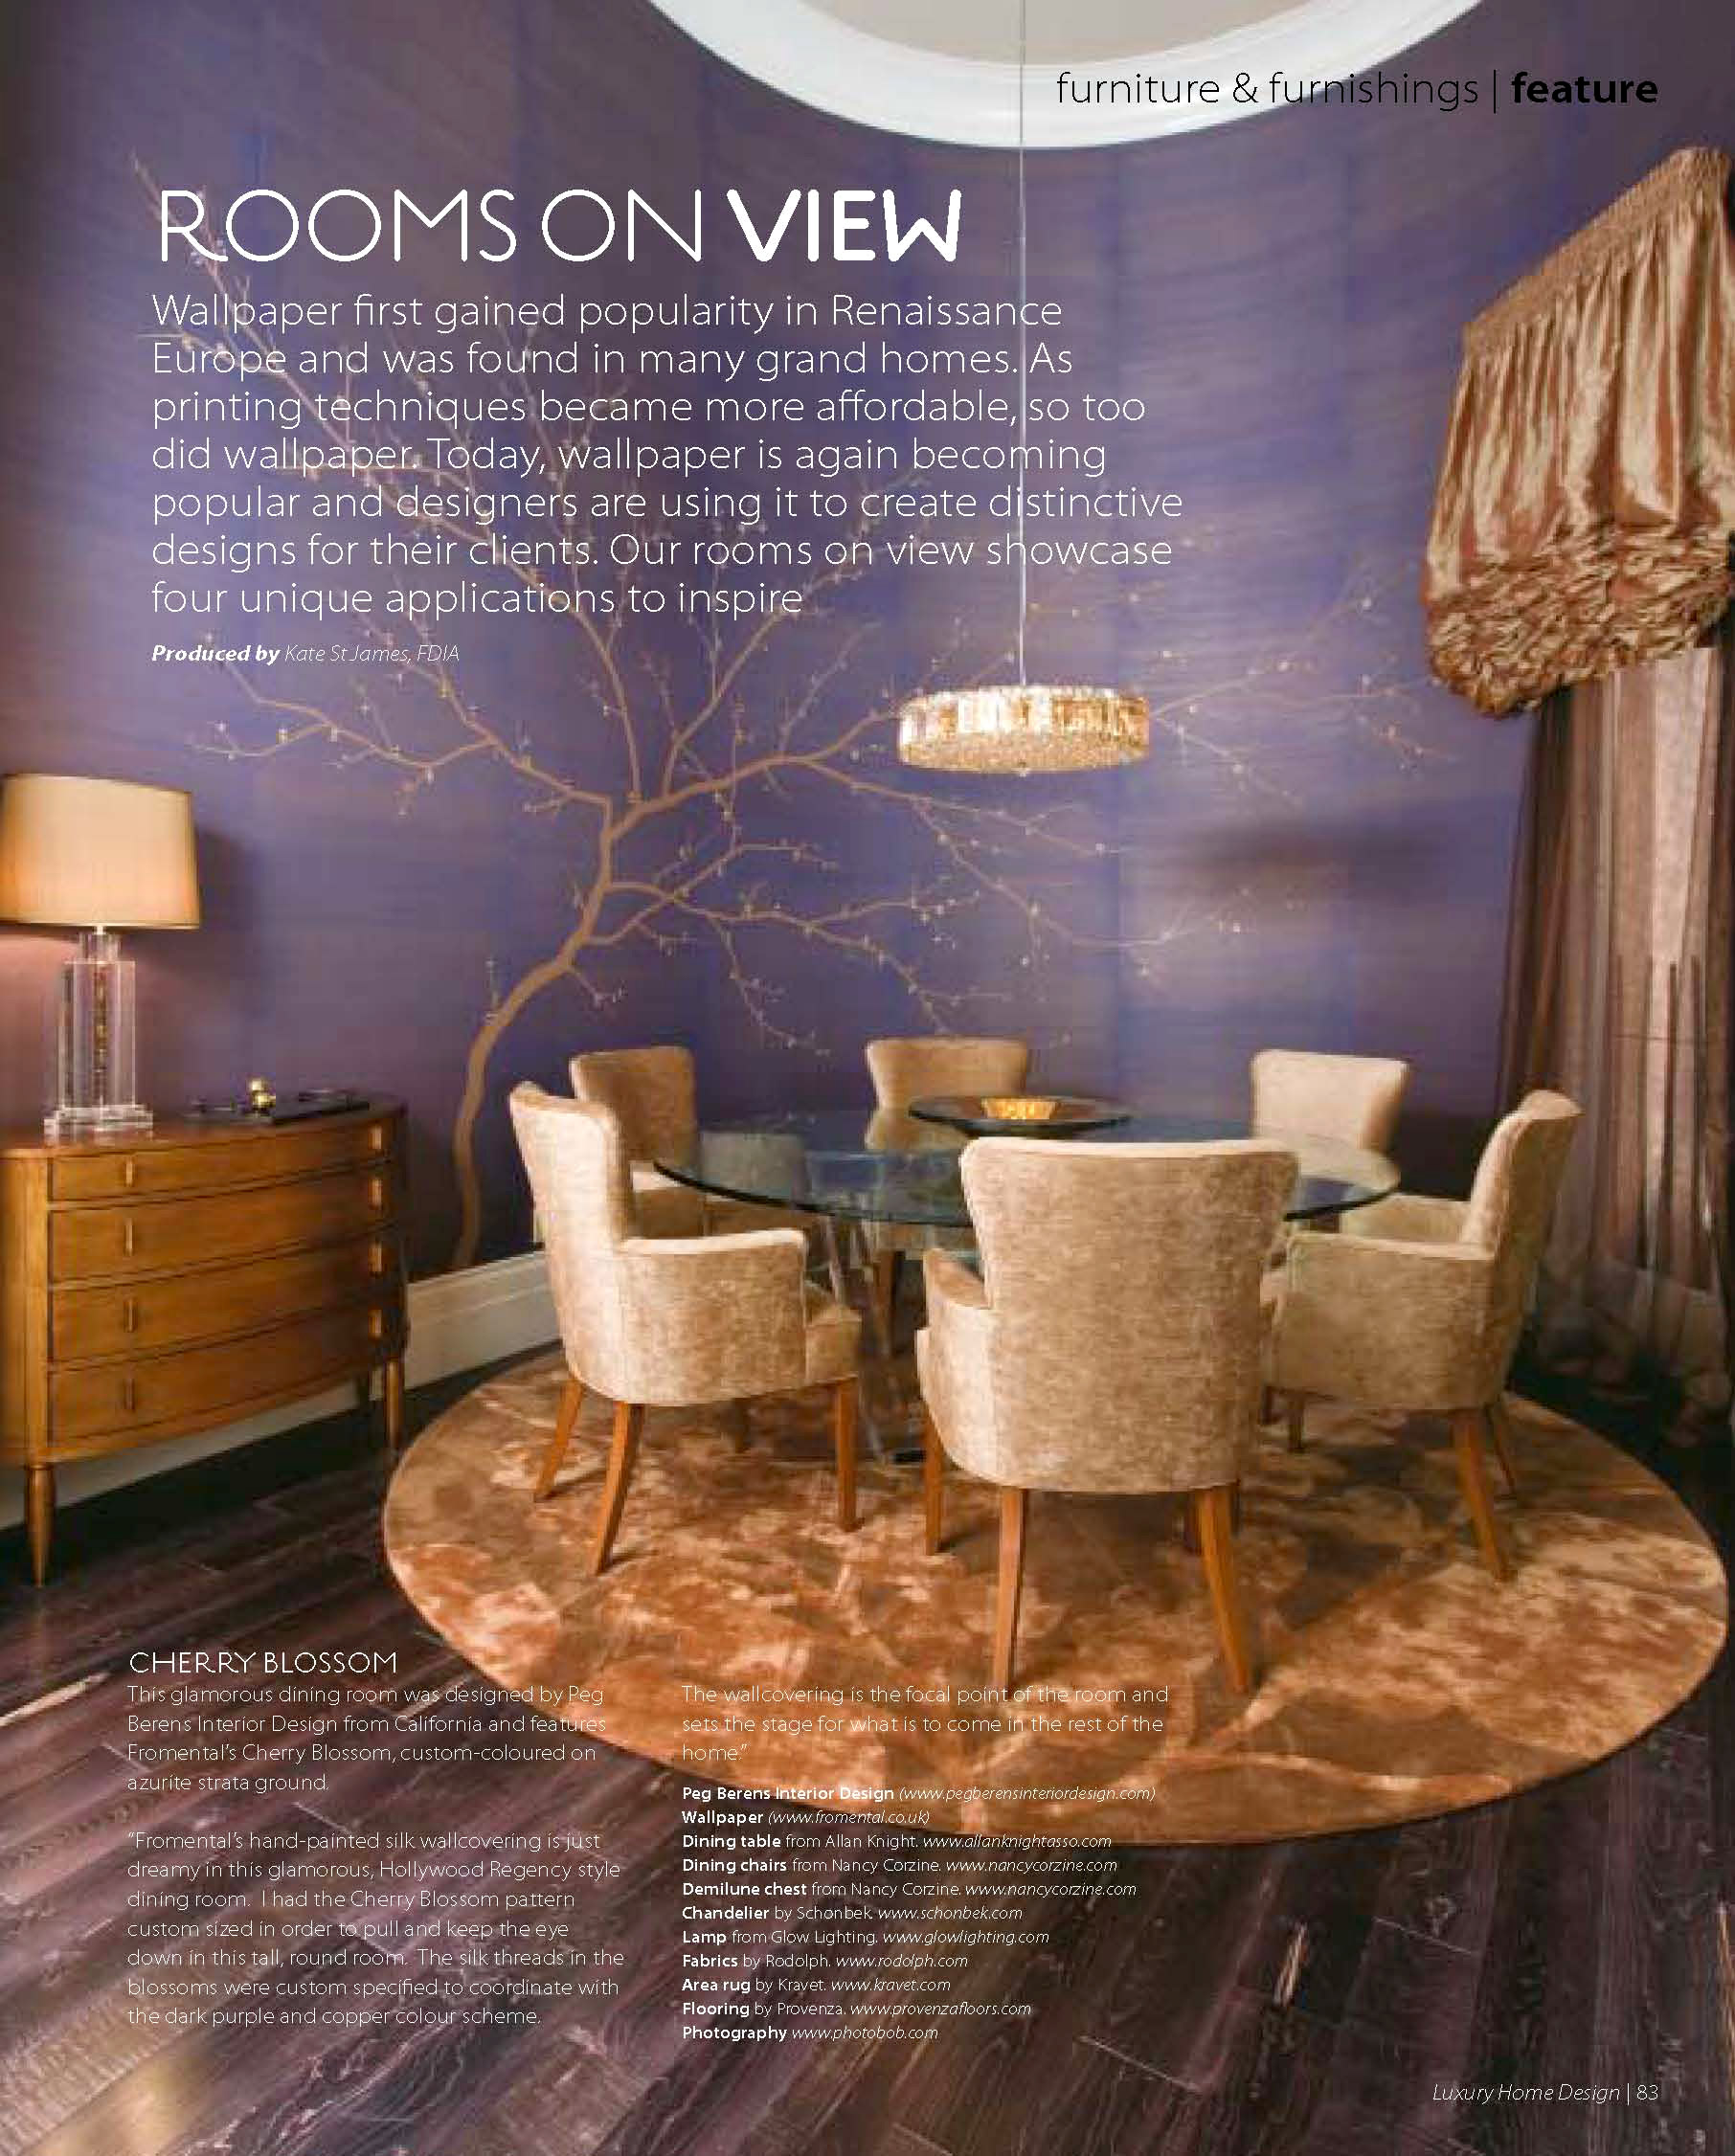 Luxury-Home-Design_p083-089-FEATURE-Furniture_Page_1